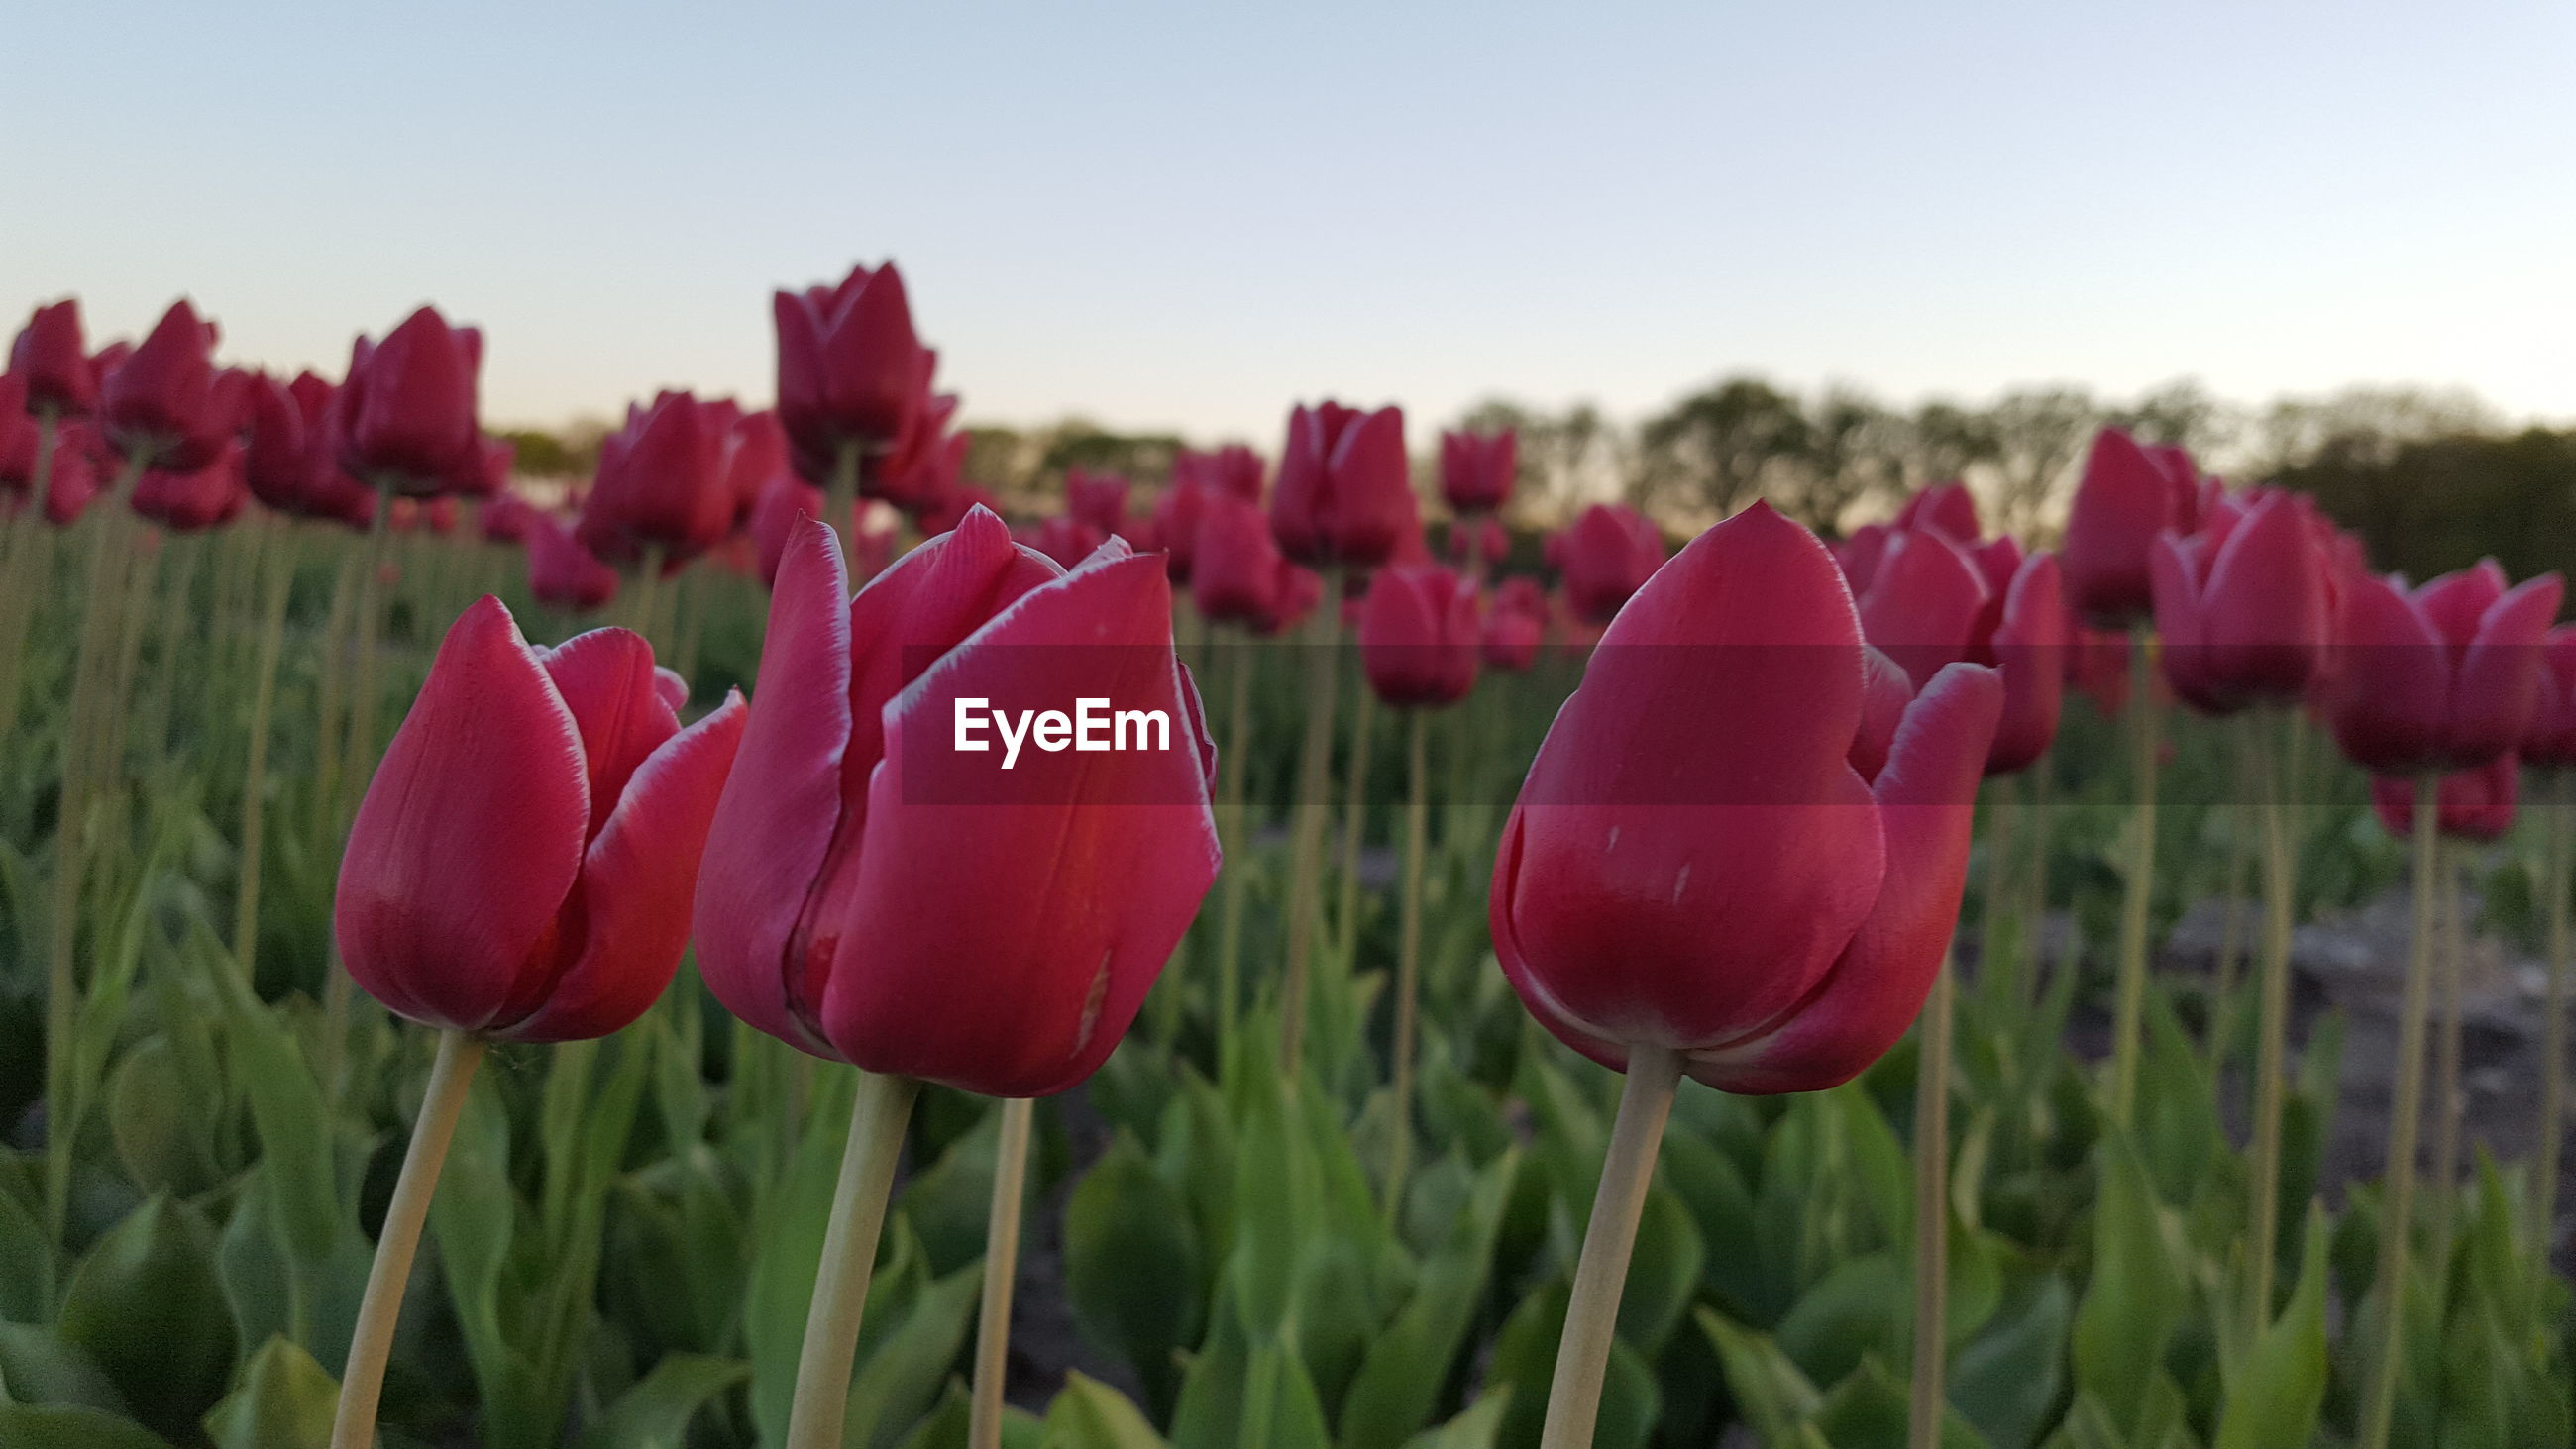 CLOSE-UP OF RED TULIPS GROWING ON FIELD